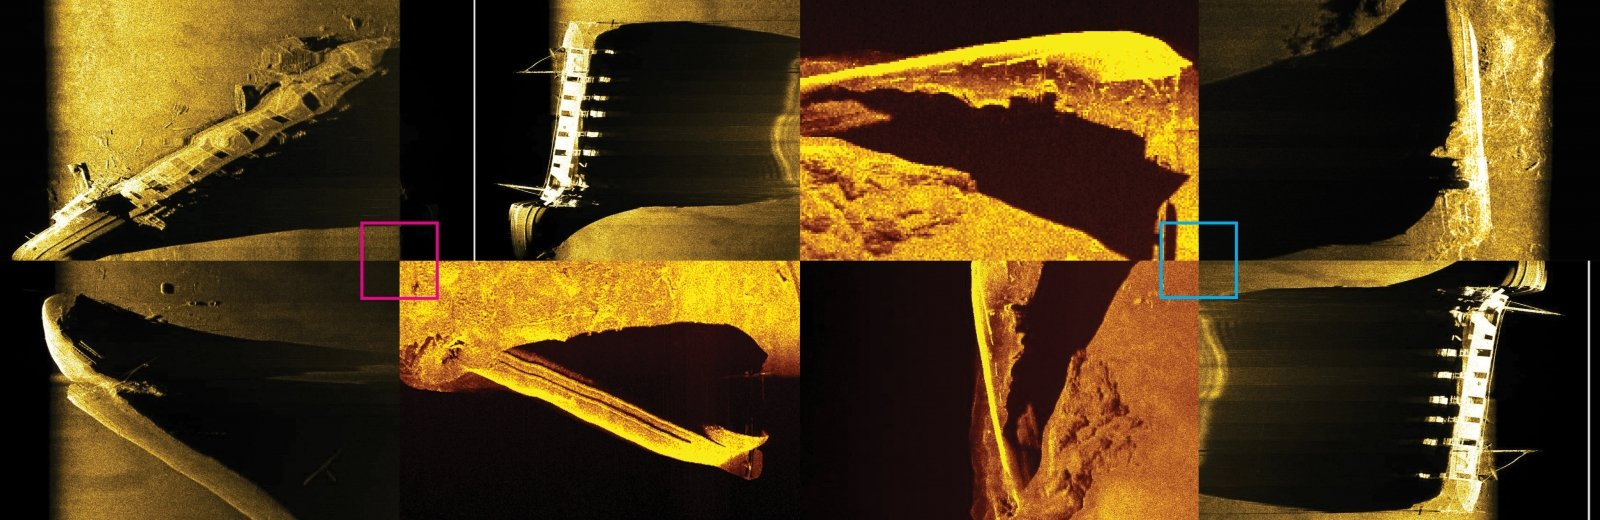 Black and gold colored sonar pictures of shipwreck ruins with shadows, squares, rectangles, sticks and irregularly shaped pieces of boats.